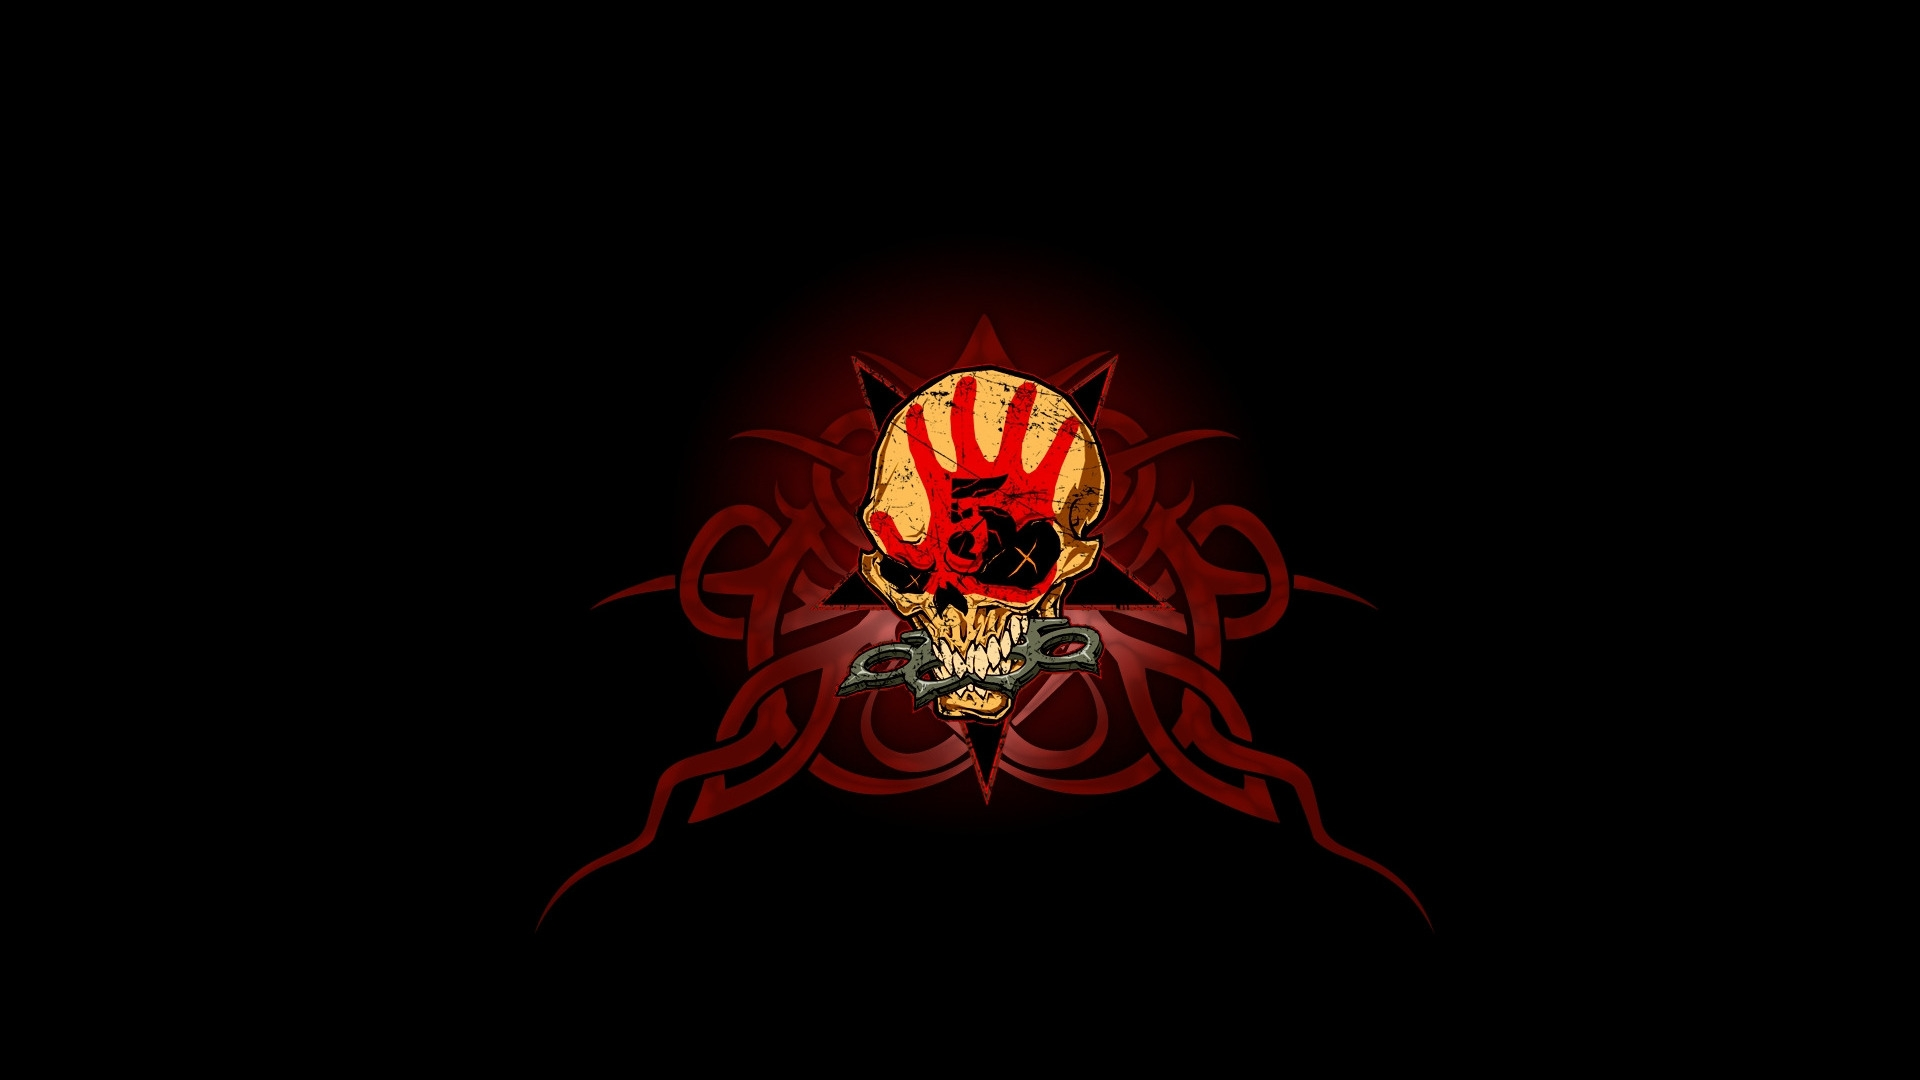 1920x1080 Skull desktop PC and Mac wallpaper 1920x1080